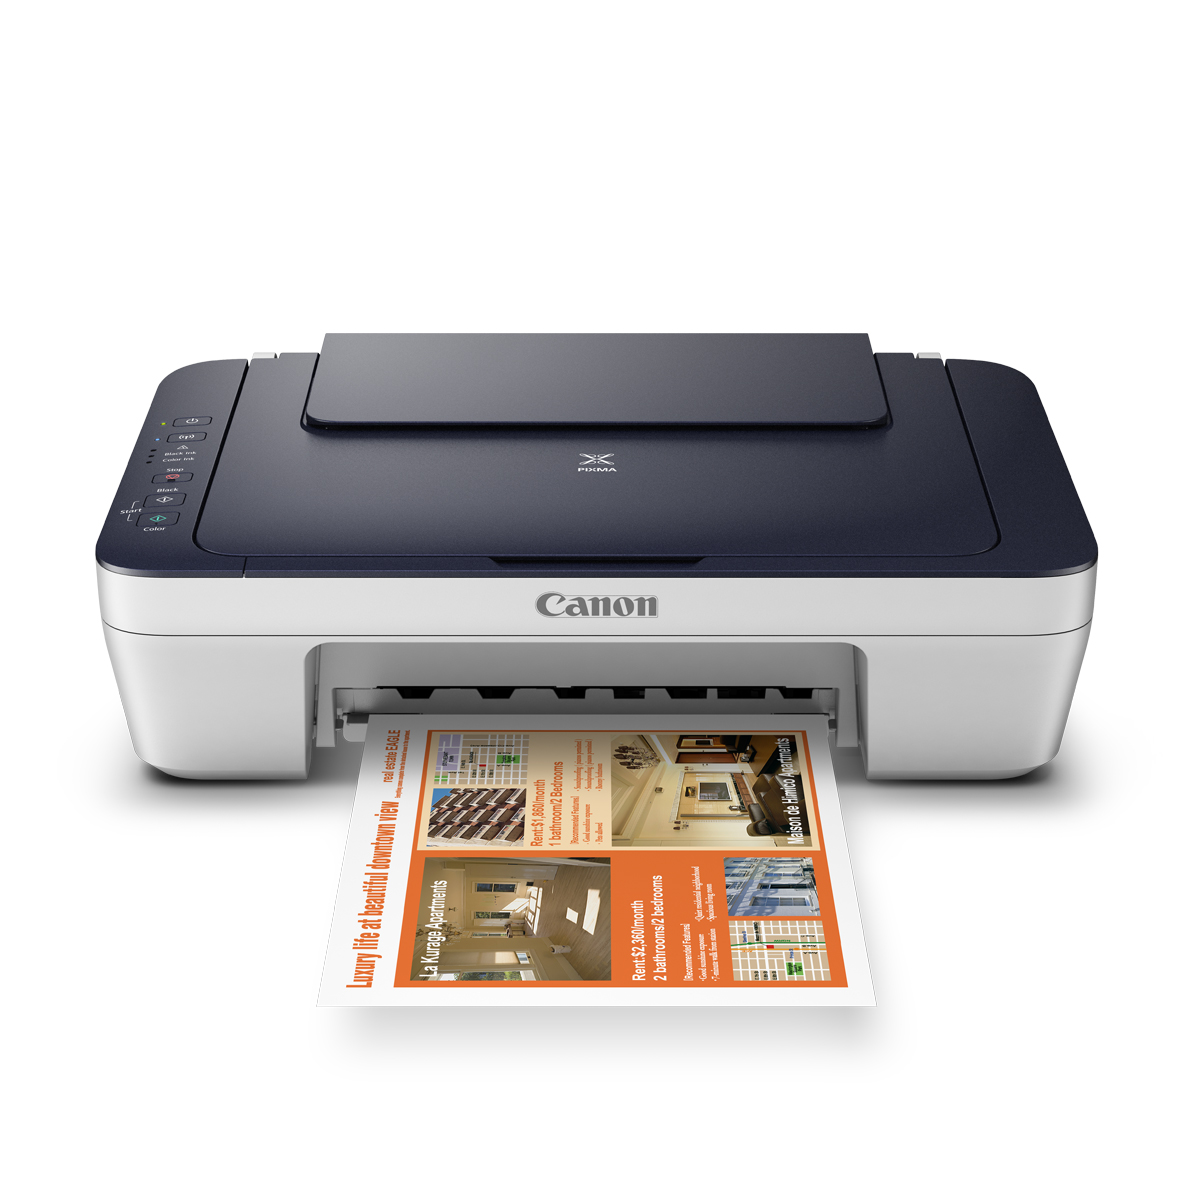 Canon PIXMA MG2965 Inkjet All-in-One printer white with blue lid front open